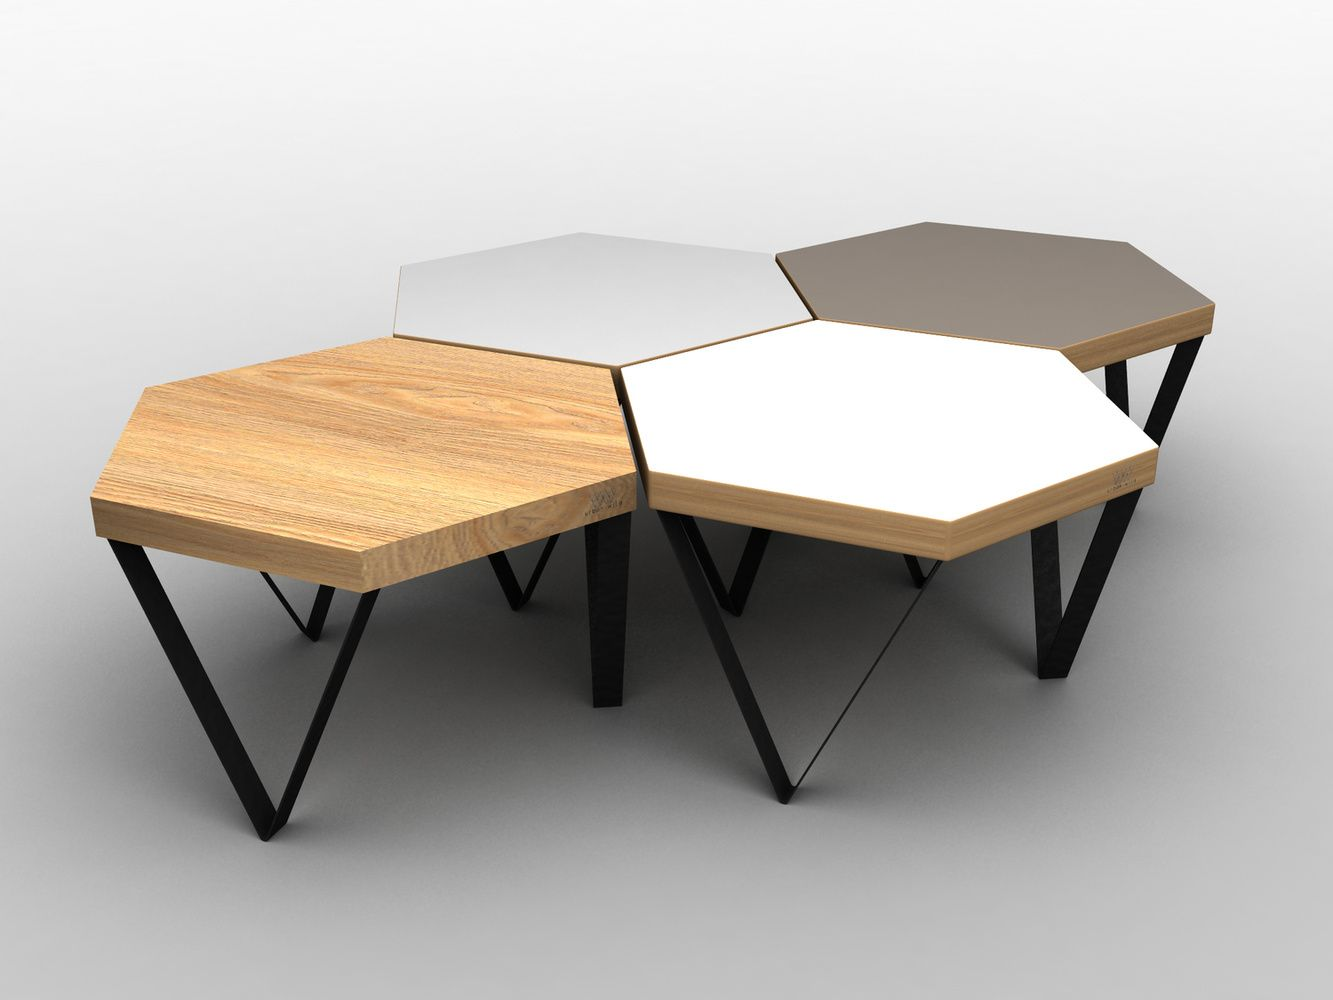 Designer Urban Wild Cool Side Tables That Come In Diif Shapes